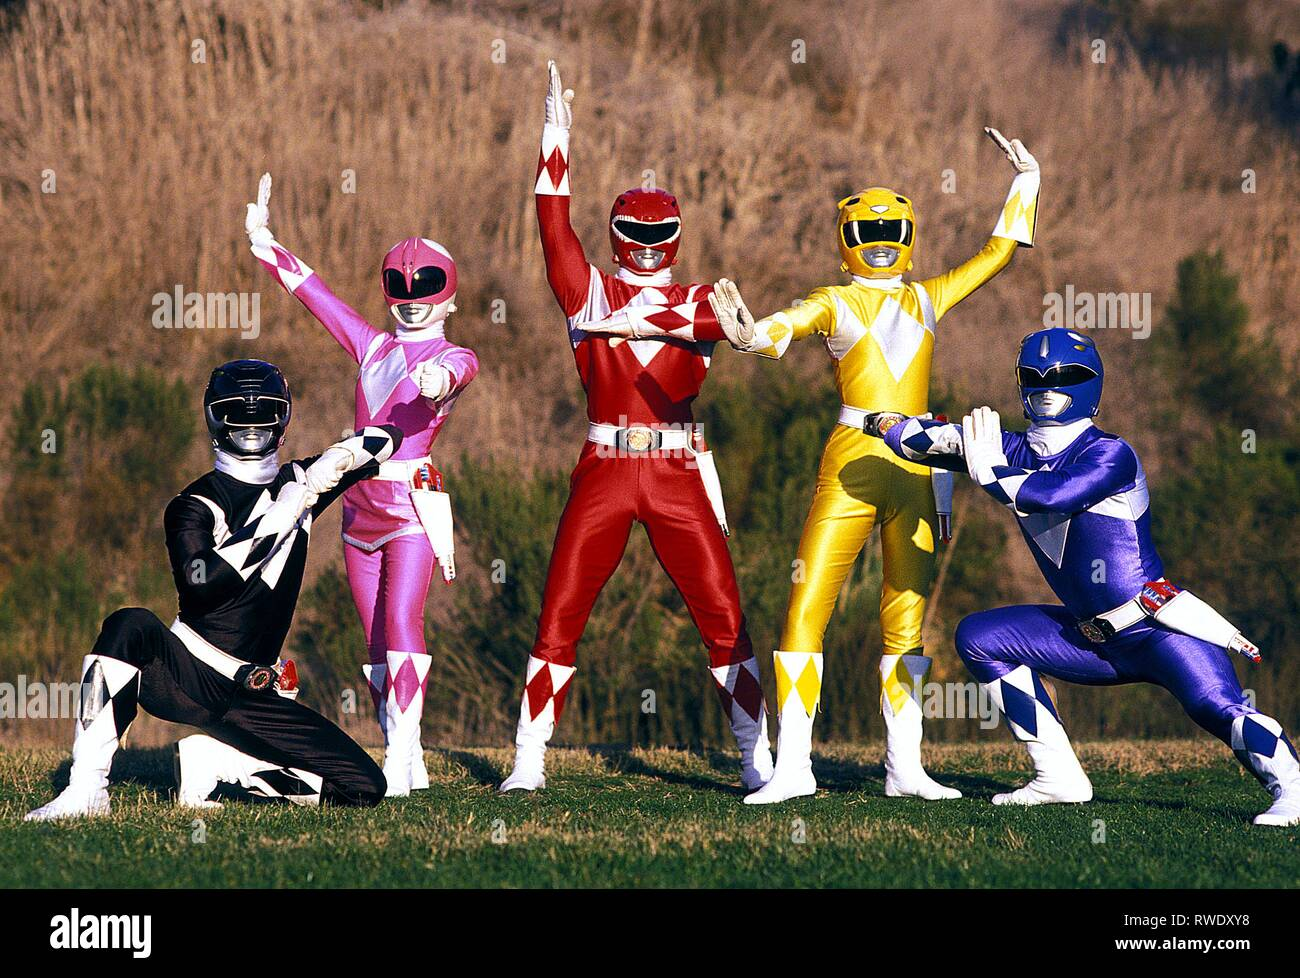 RANGER,RANGER,RANGER,RANGER,RANGER, MIGHTY MORPHIN POWER RANGERS, 1993 Stock Photo